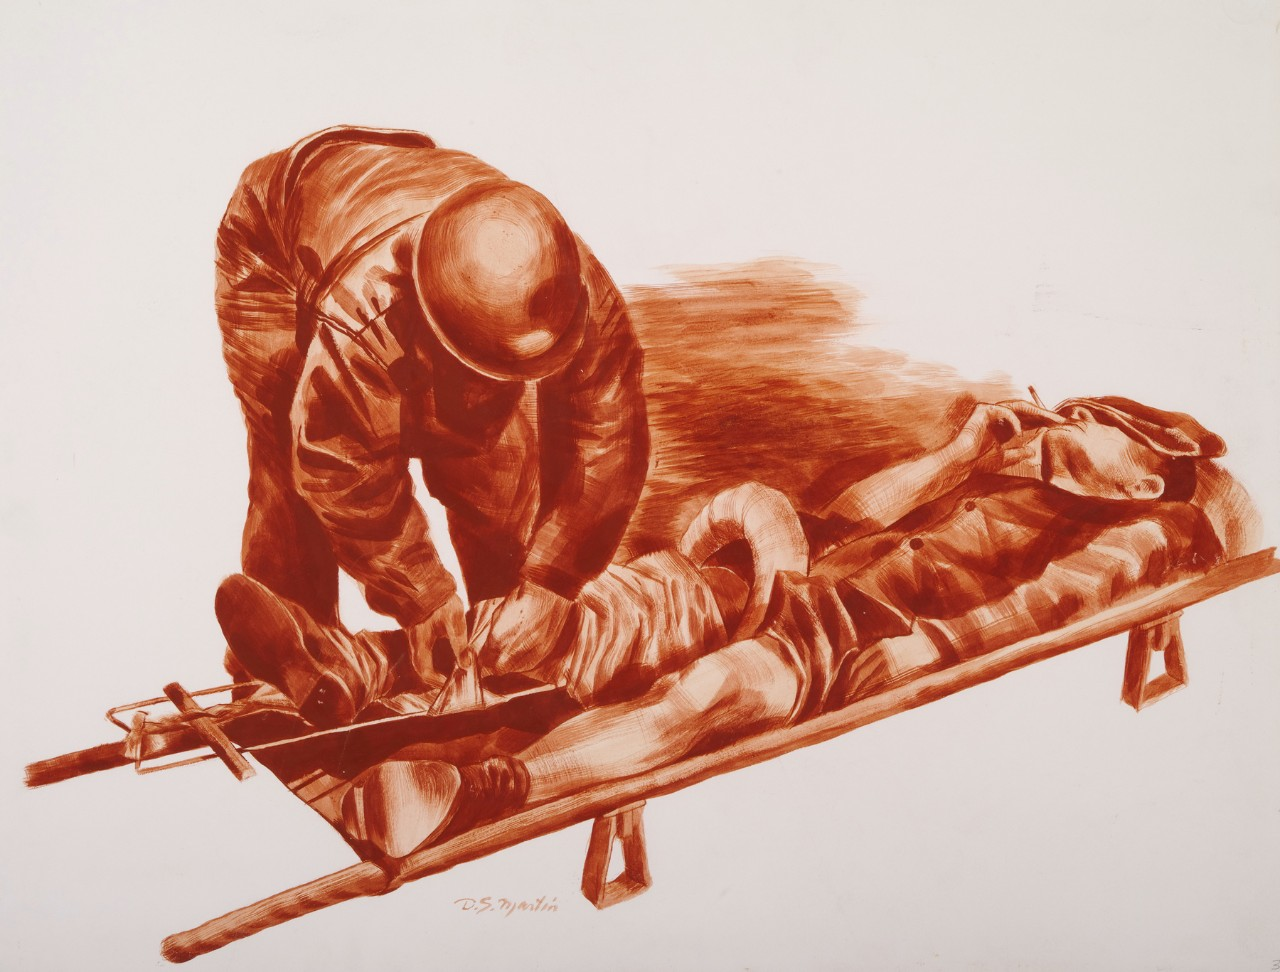 A Navy corpsman tends to a man on a stretcher